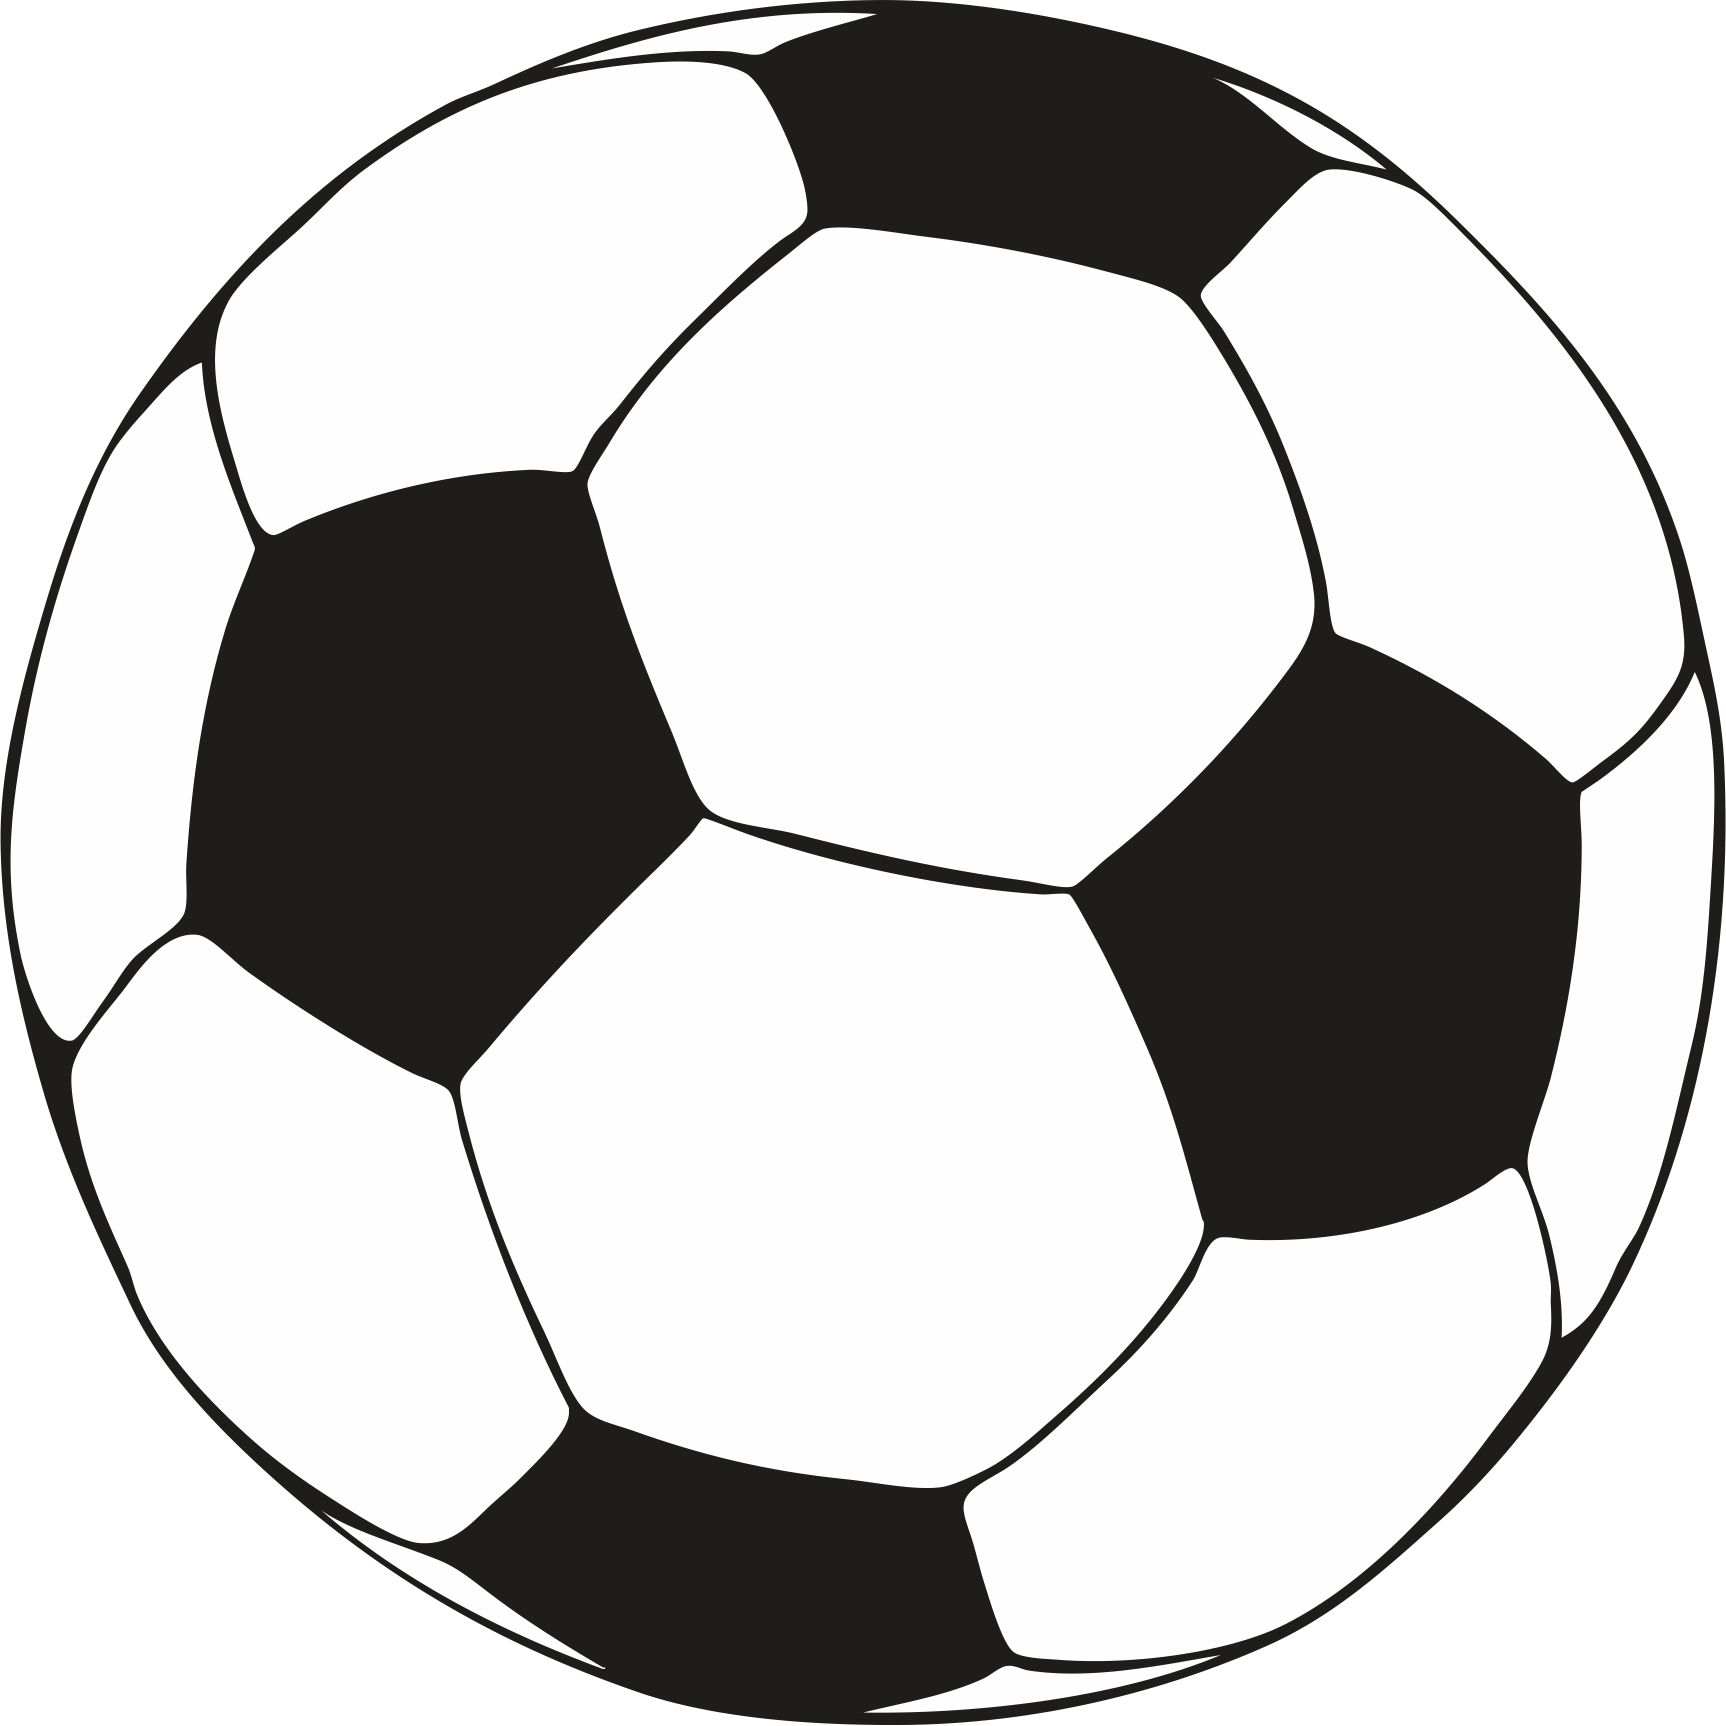 soccer ball coloring pages download and print for free special miscellany soccer soccer. Black Bedroom Furniture Sets. Home Design Ideas